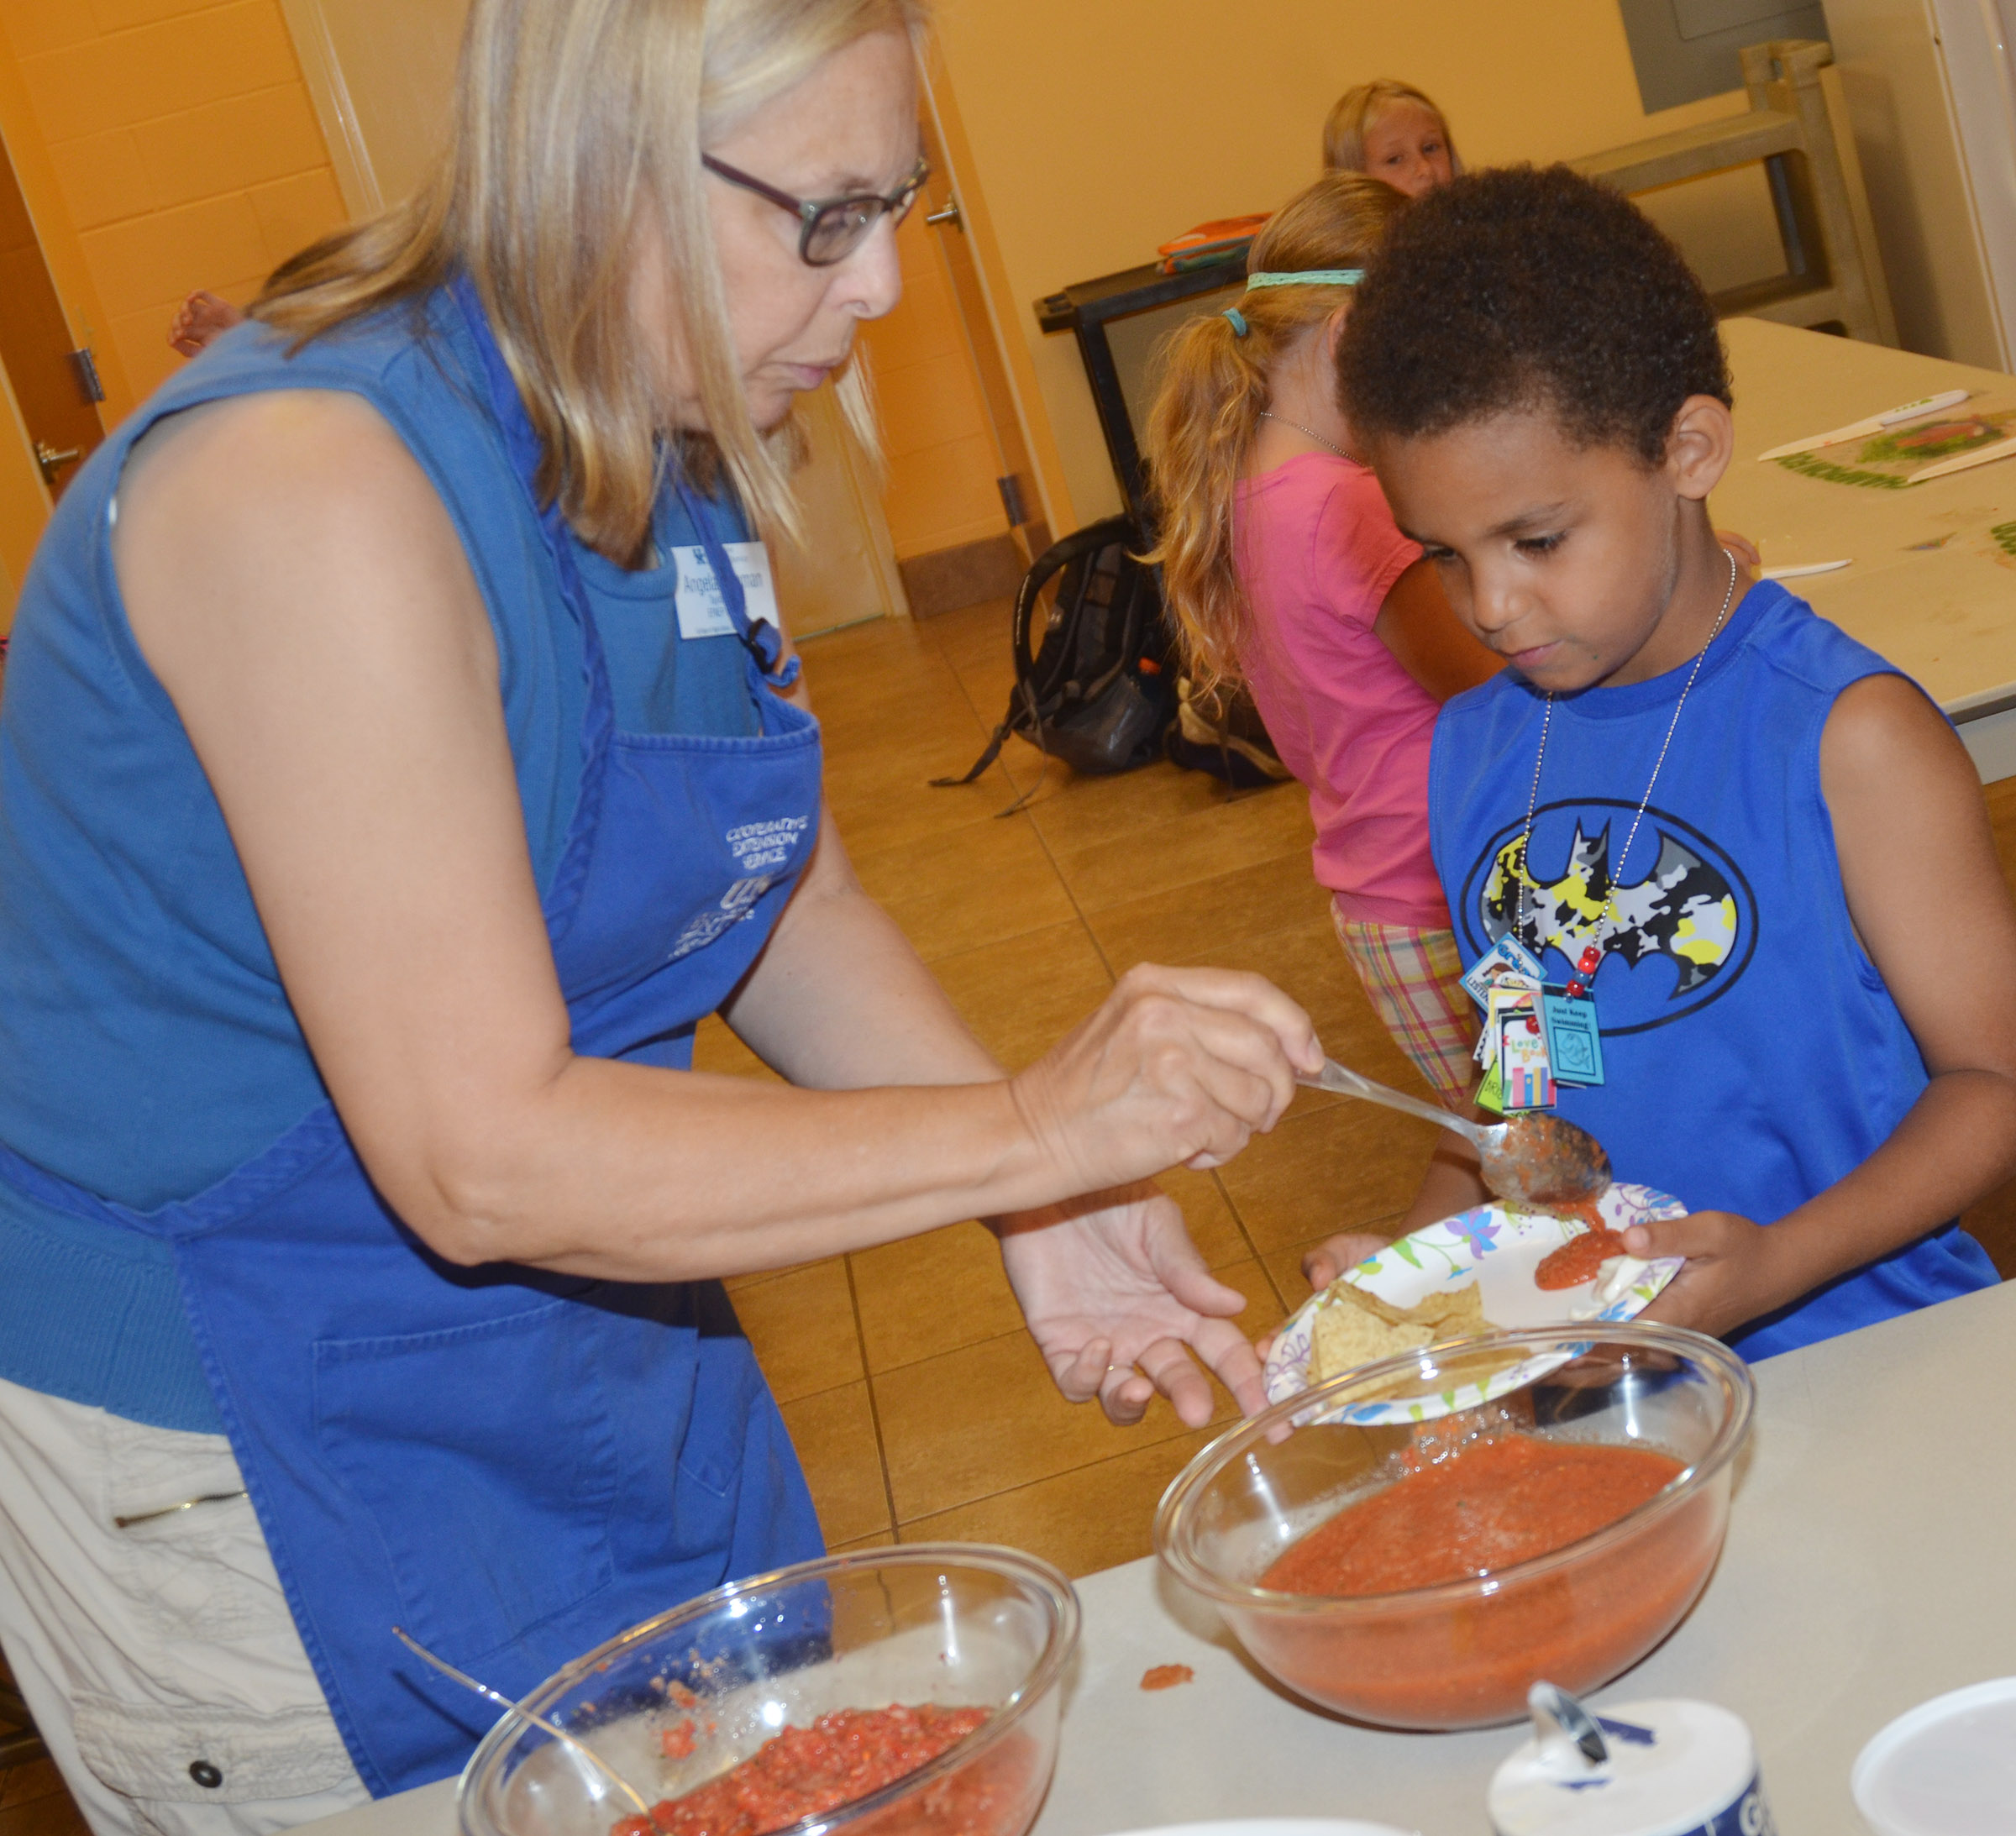 Angie Freeman, expanded foods and nutrition program assistant at Taylor County Extension Office, gives CES kindergartener Quincy Travis a sample of the salsa he helped make.